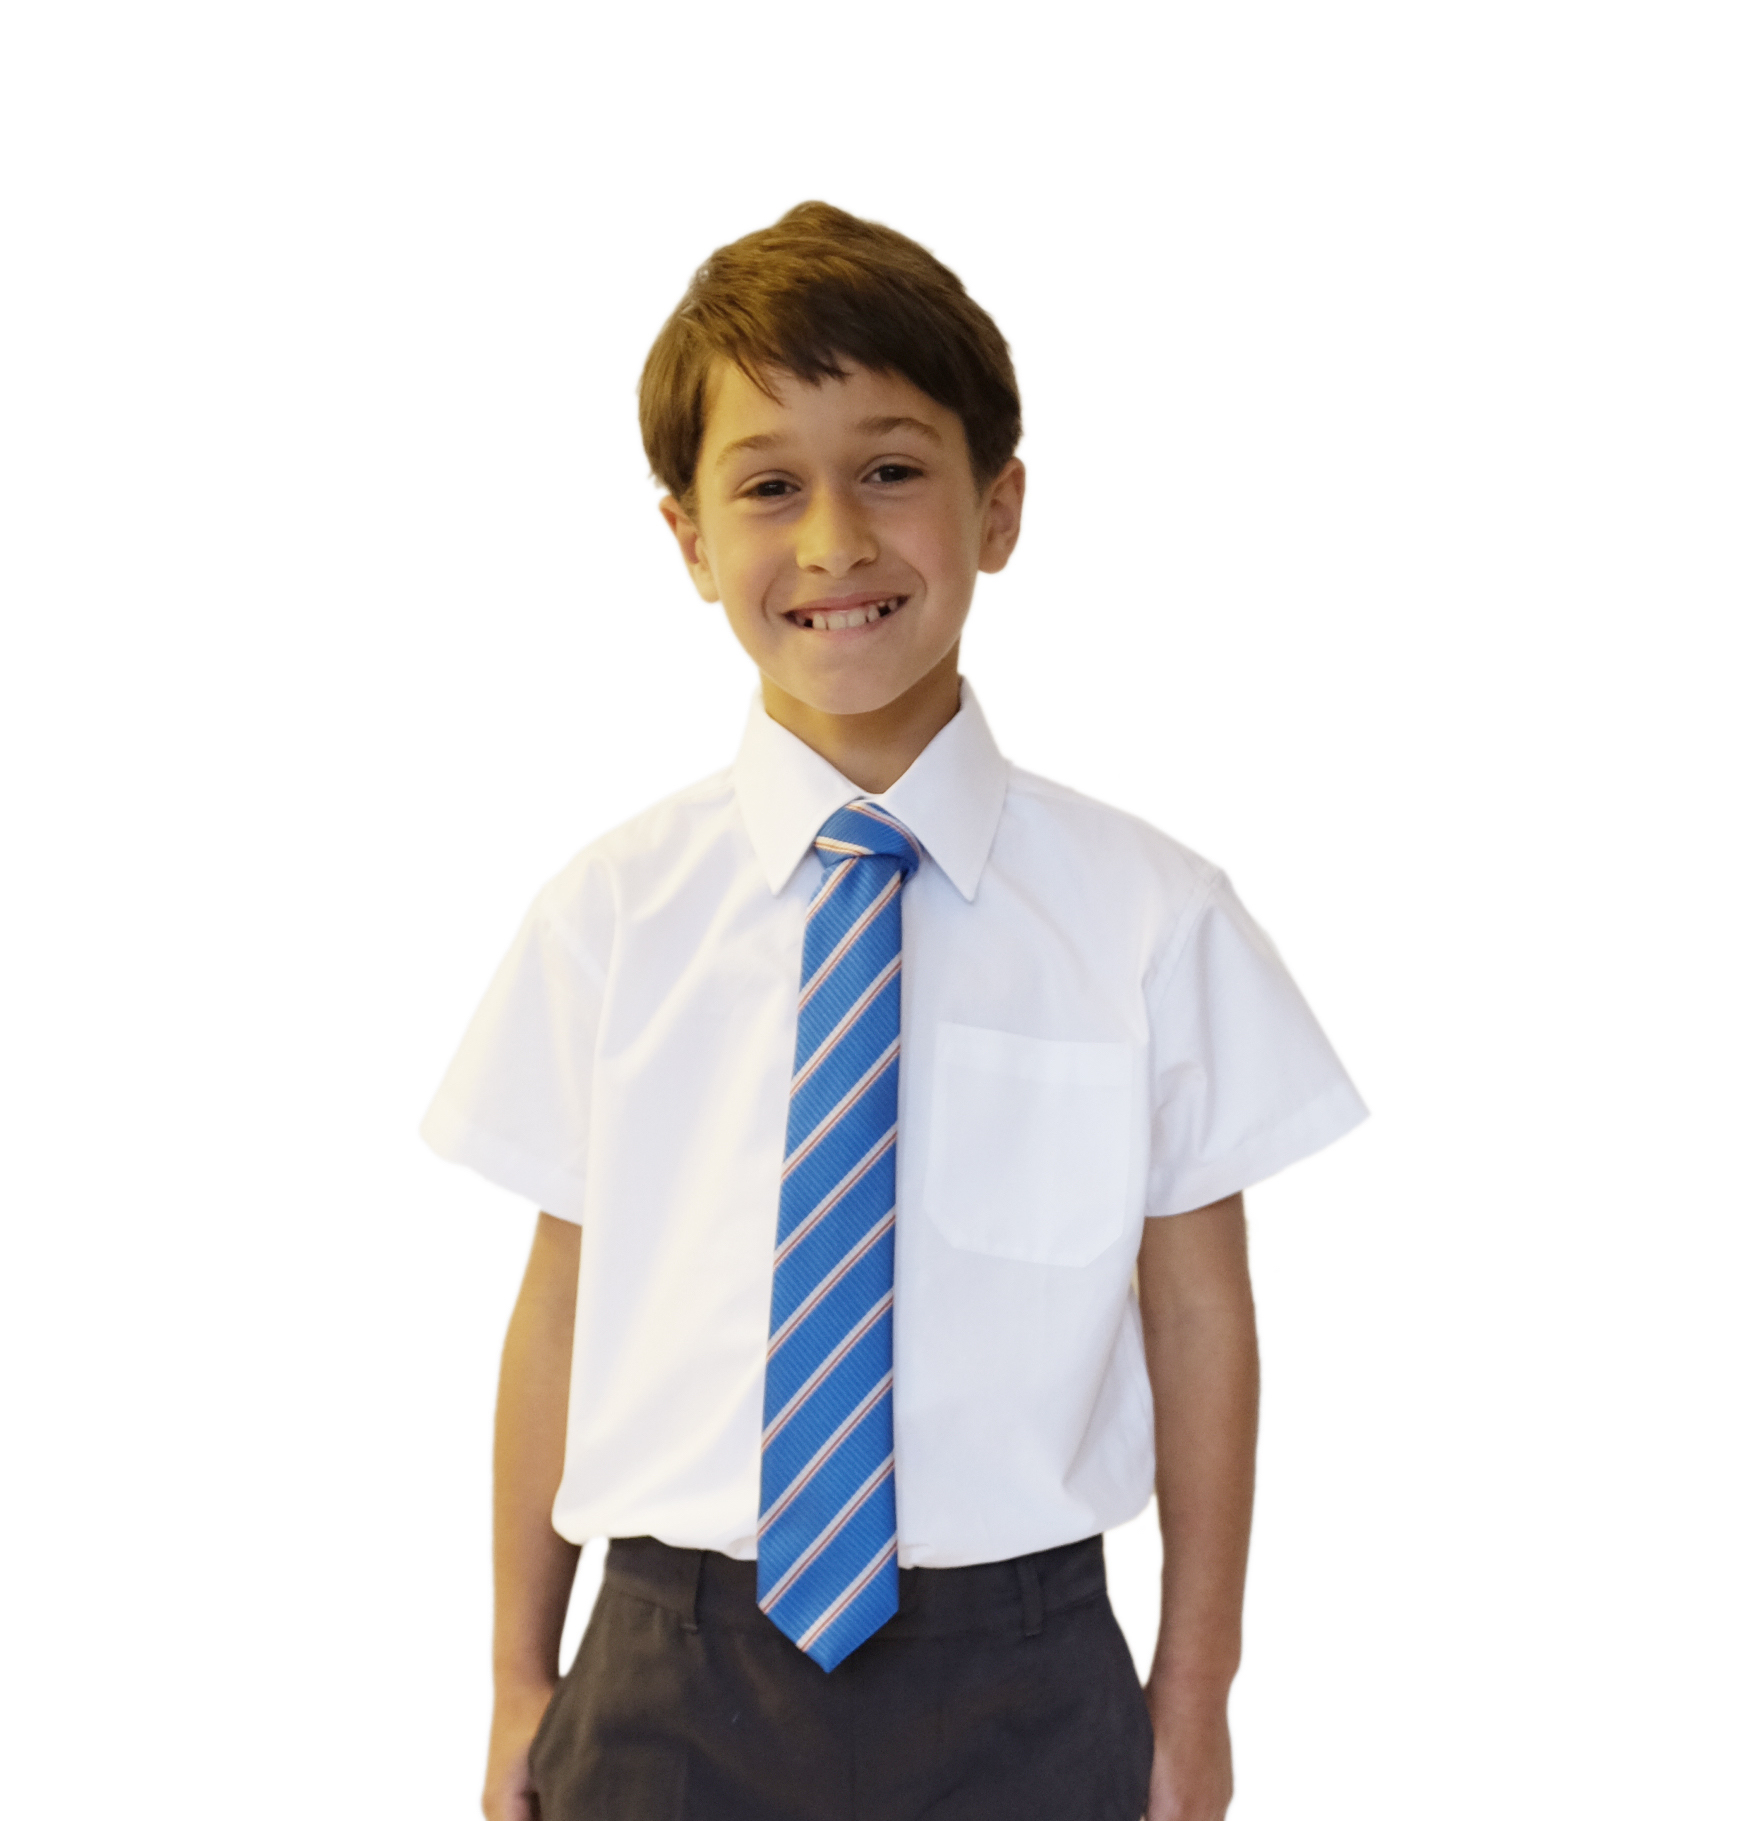 Pure Cotton School Uniform Organic Cotton School Shirt